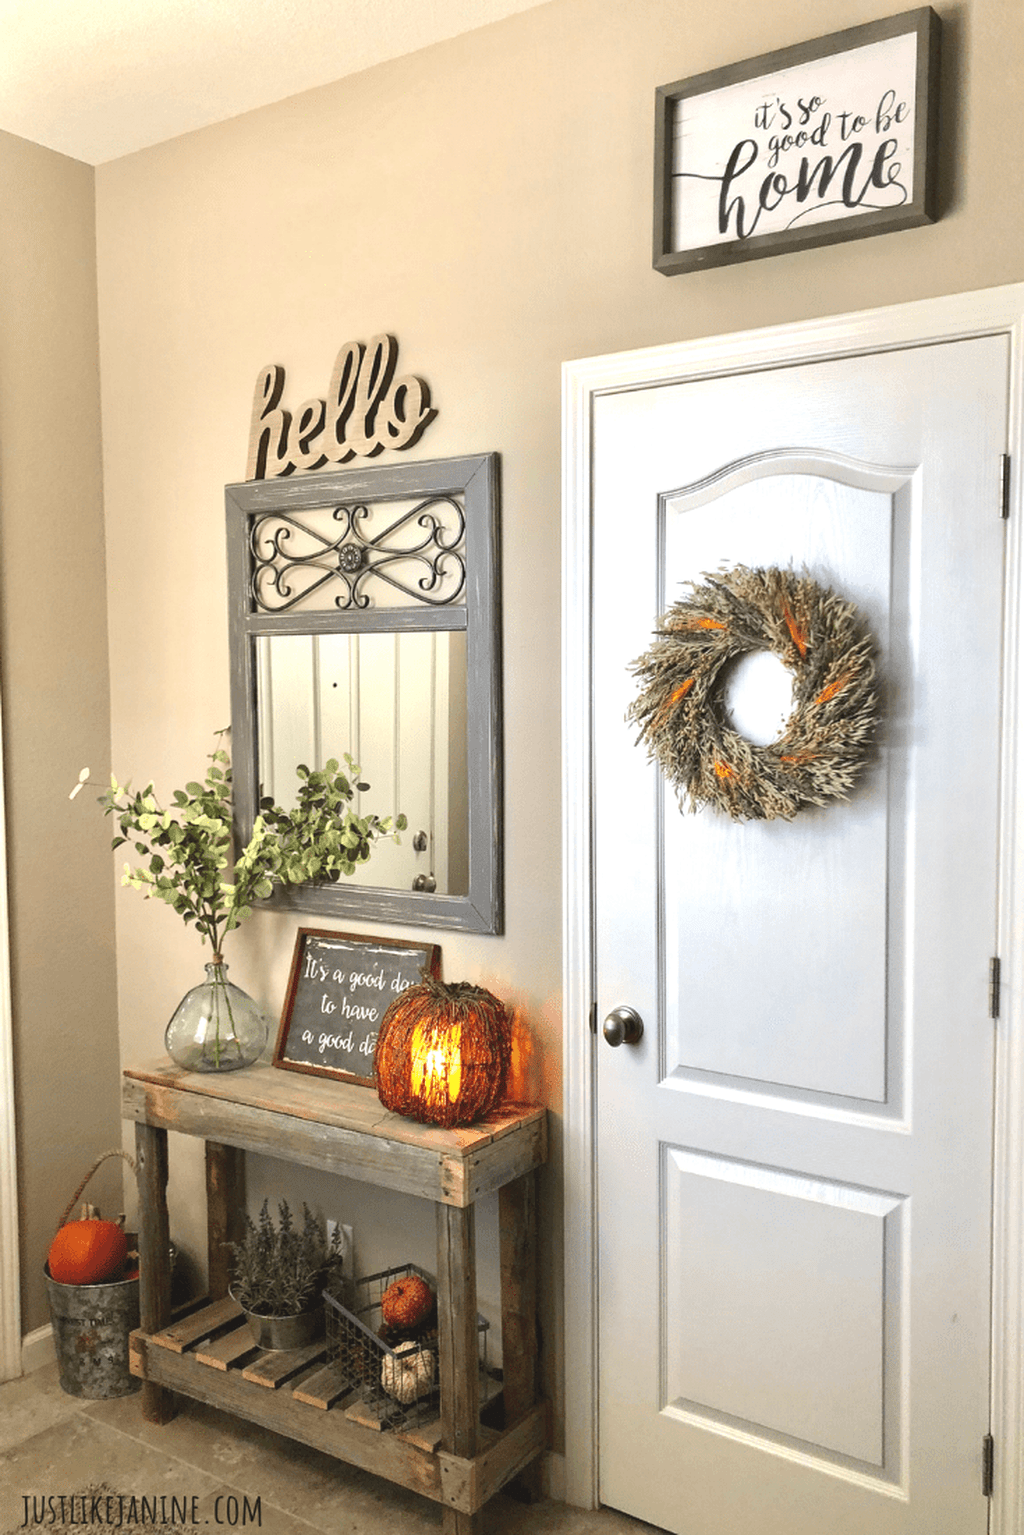 35 Amazing Small Entryway Decor Ideas Magzhouse In 2020